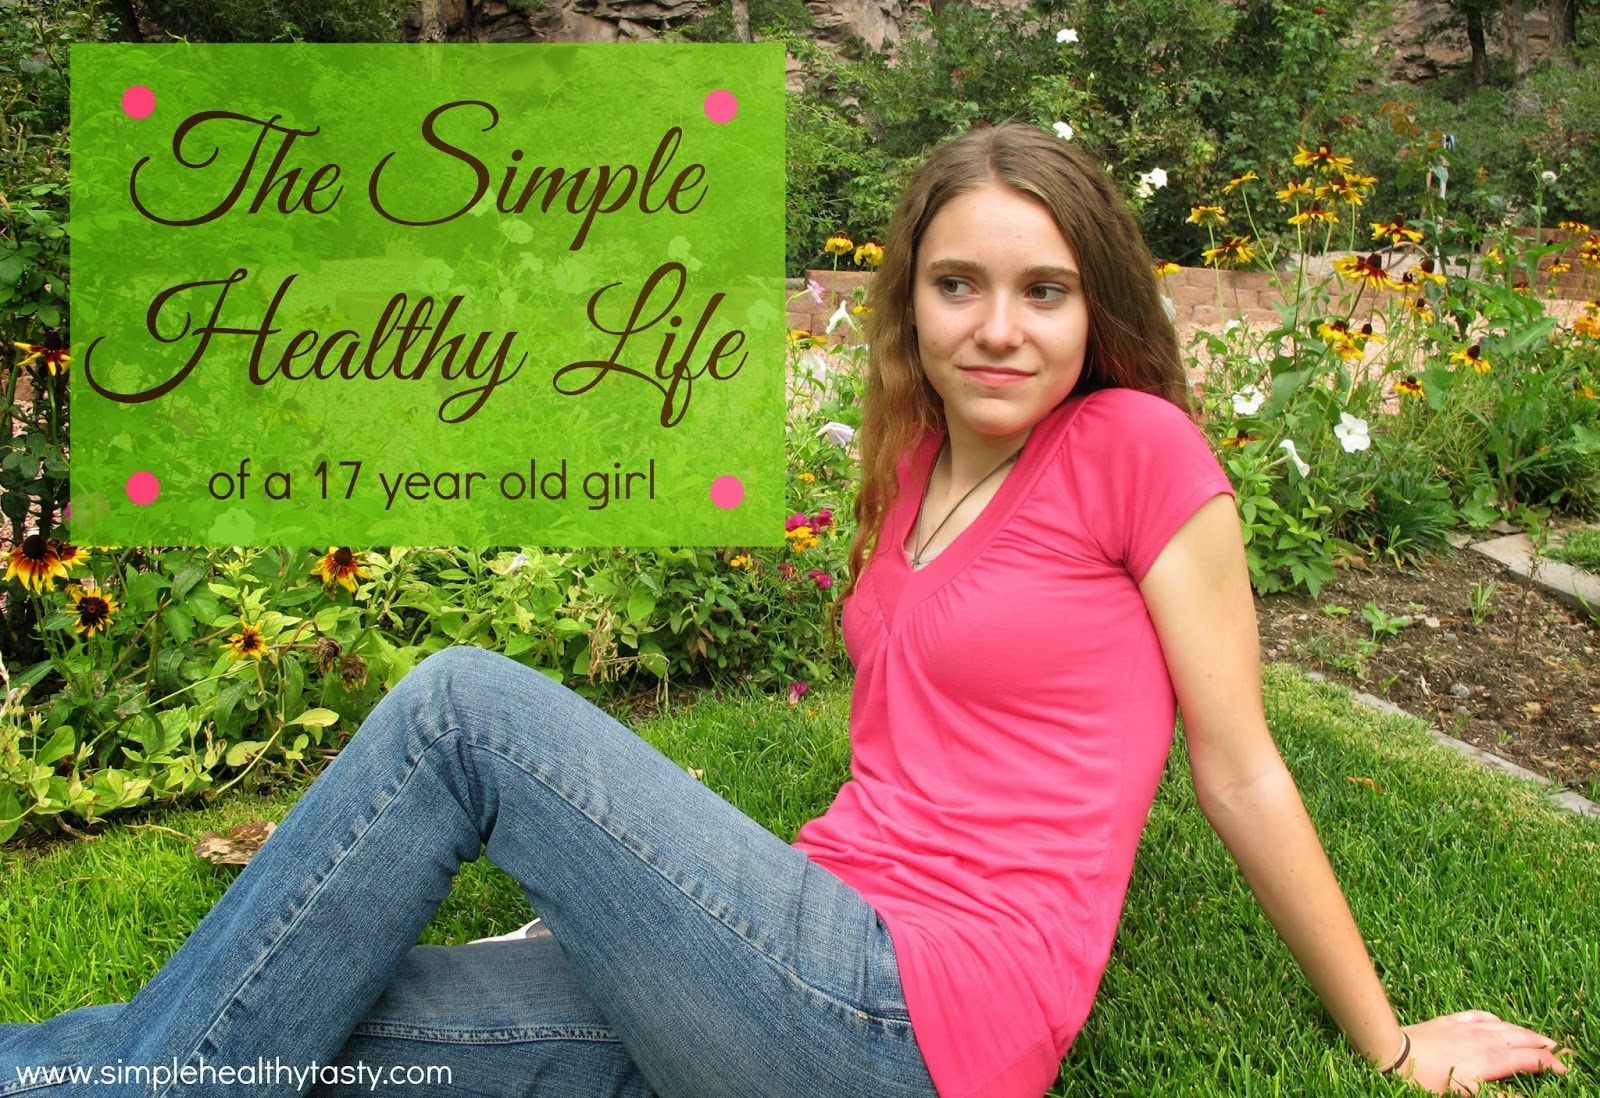 My Simple Healthy Life at 17